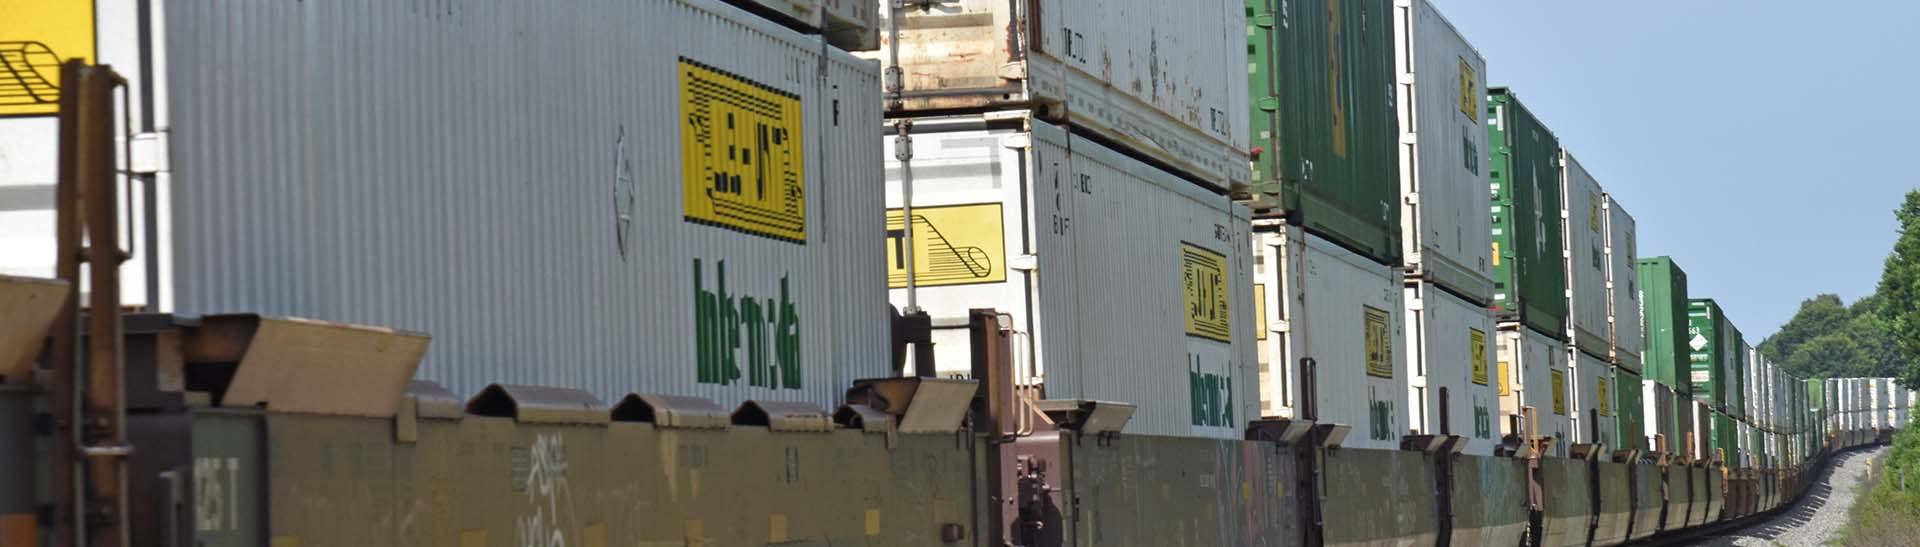 Chicago Trucking Services, Logistics Services and Intermodal Trucking